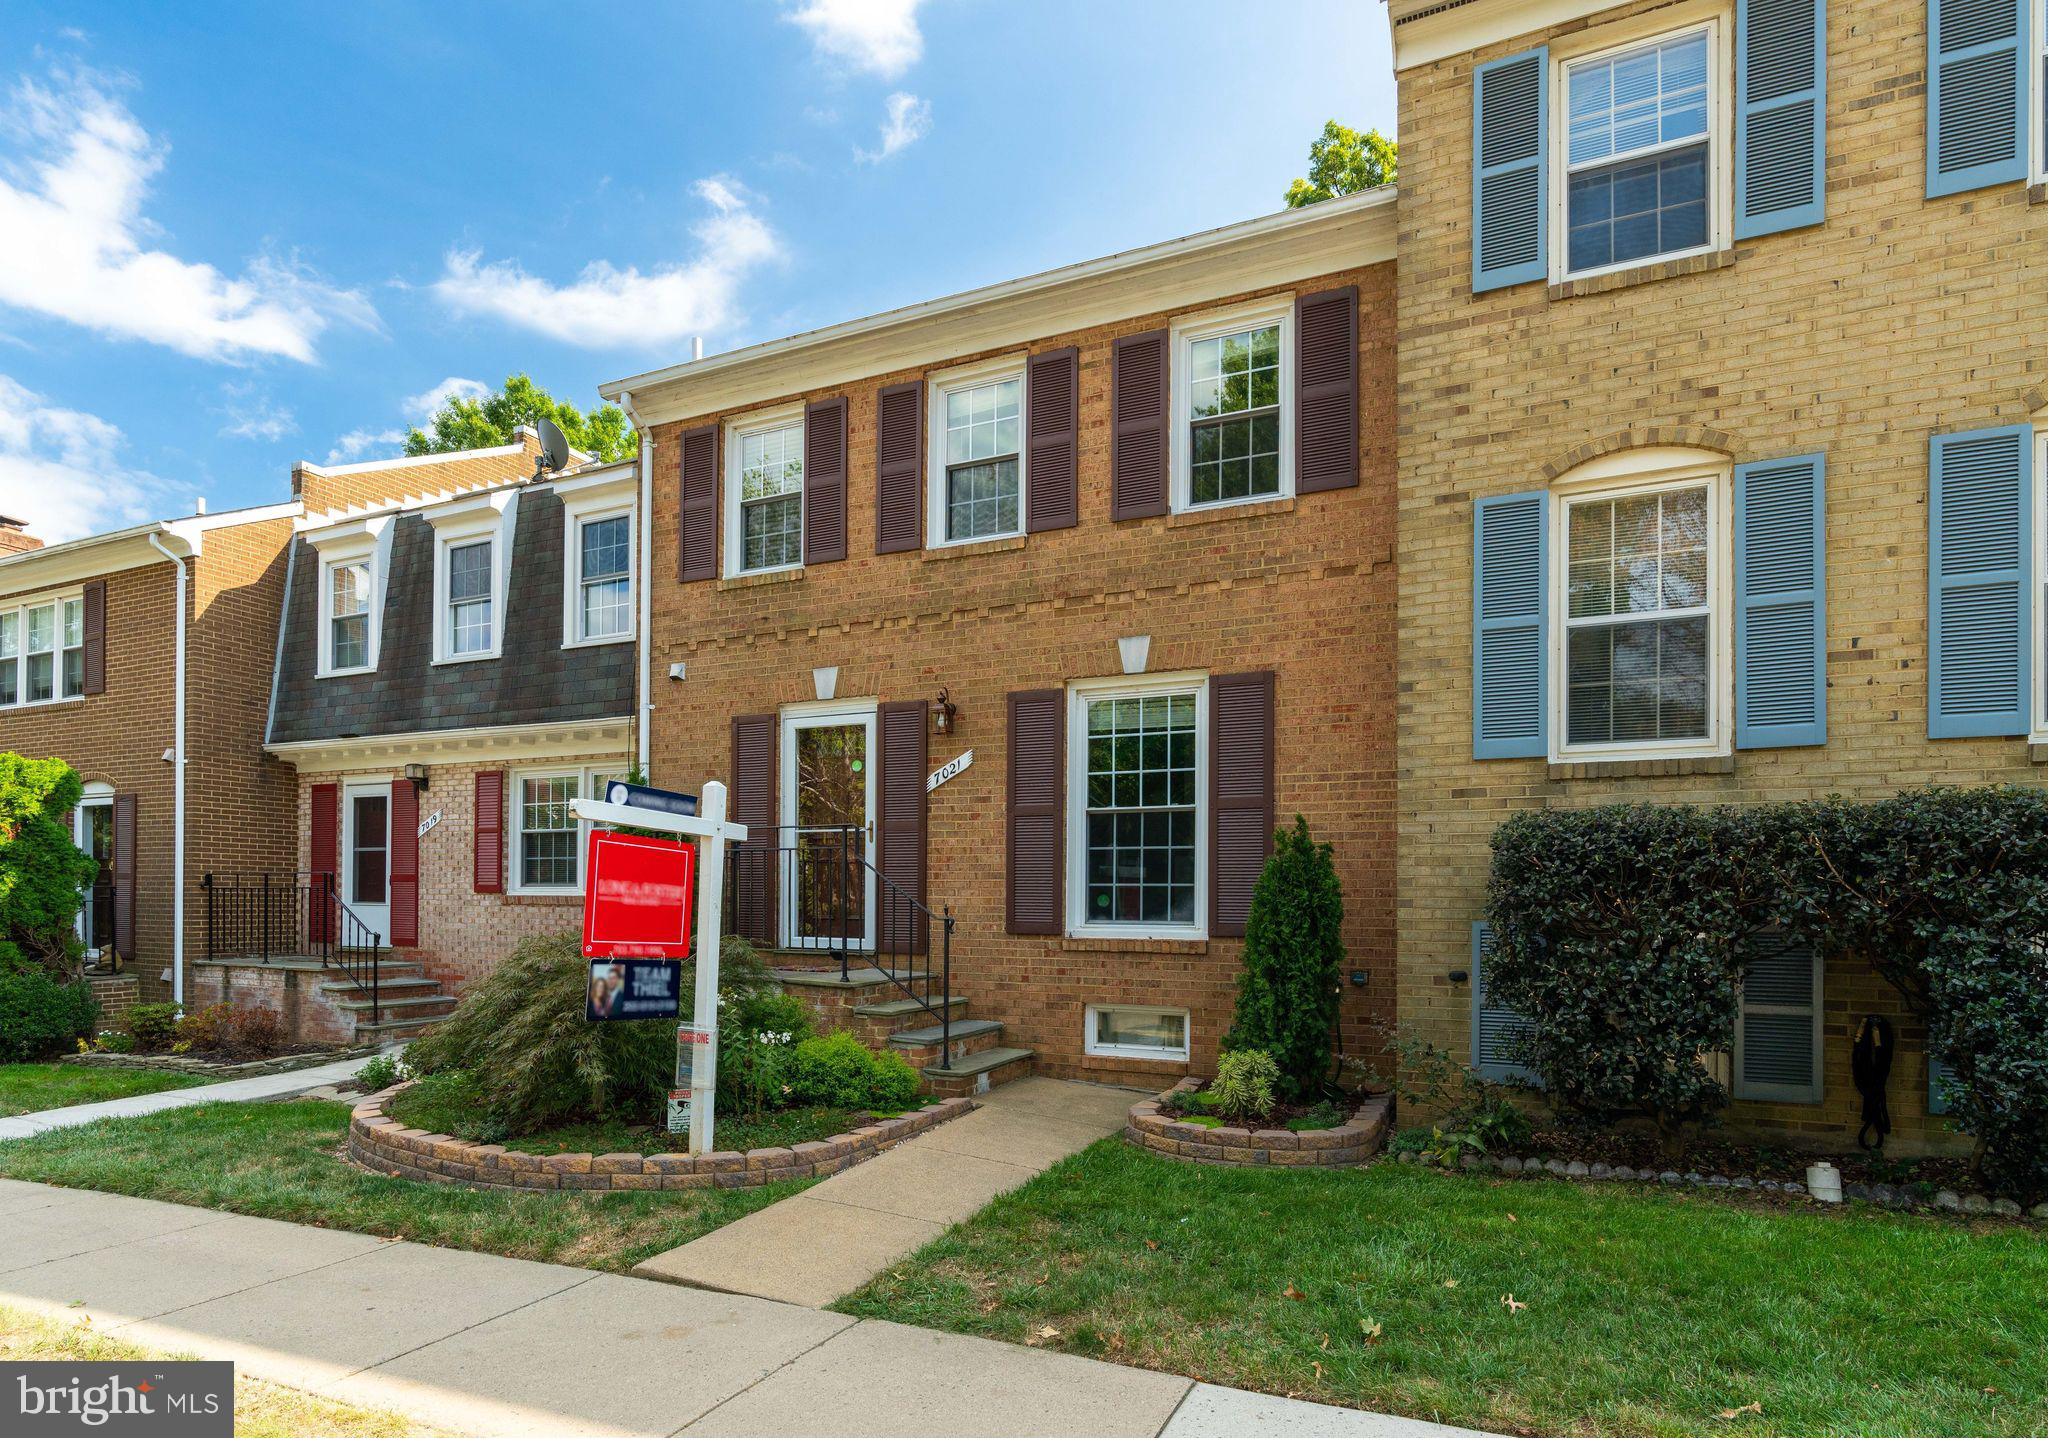 Welcome home to beautiful Leewood, featuring 195 premium townhomes inside the beltway! This all-brick townhouse was renovated in 2016 with an extensive $50k renovation and is move-in ready! The renovated kitchen~s stainless appliances and high-end granite countertops will make you feel like a gourmet chef. The light-filled main level is perfect for entertaining with gleaming hardwood floors and a flowing layout. Those beautiful hardwoods carry through up to the second floor and throughout the bedrooms. Updated vanities, tile, and fixtures in the bathrooms have a harmonious spa-like quality and will leave you feeling refreshed and ready for the day.  The lower level features a recently added full-bathroom, second living room with fireplace, and walks out into the beautifully manicured backyard.  Conveniently nestled inside the beltway, only minutes to  95 and the 495 Express lanes.  Conveniently located across the street from Bradlick shopping center, featuring Starbucks and Giant. The location cannot be beat!